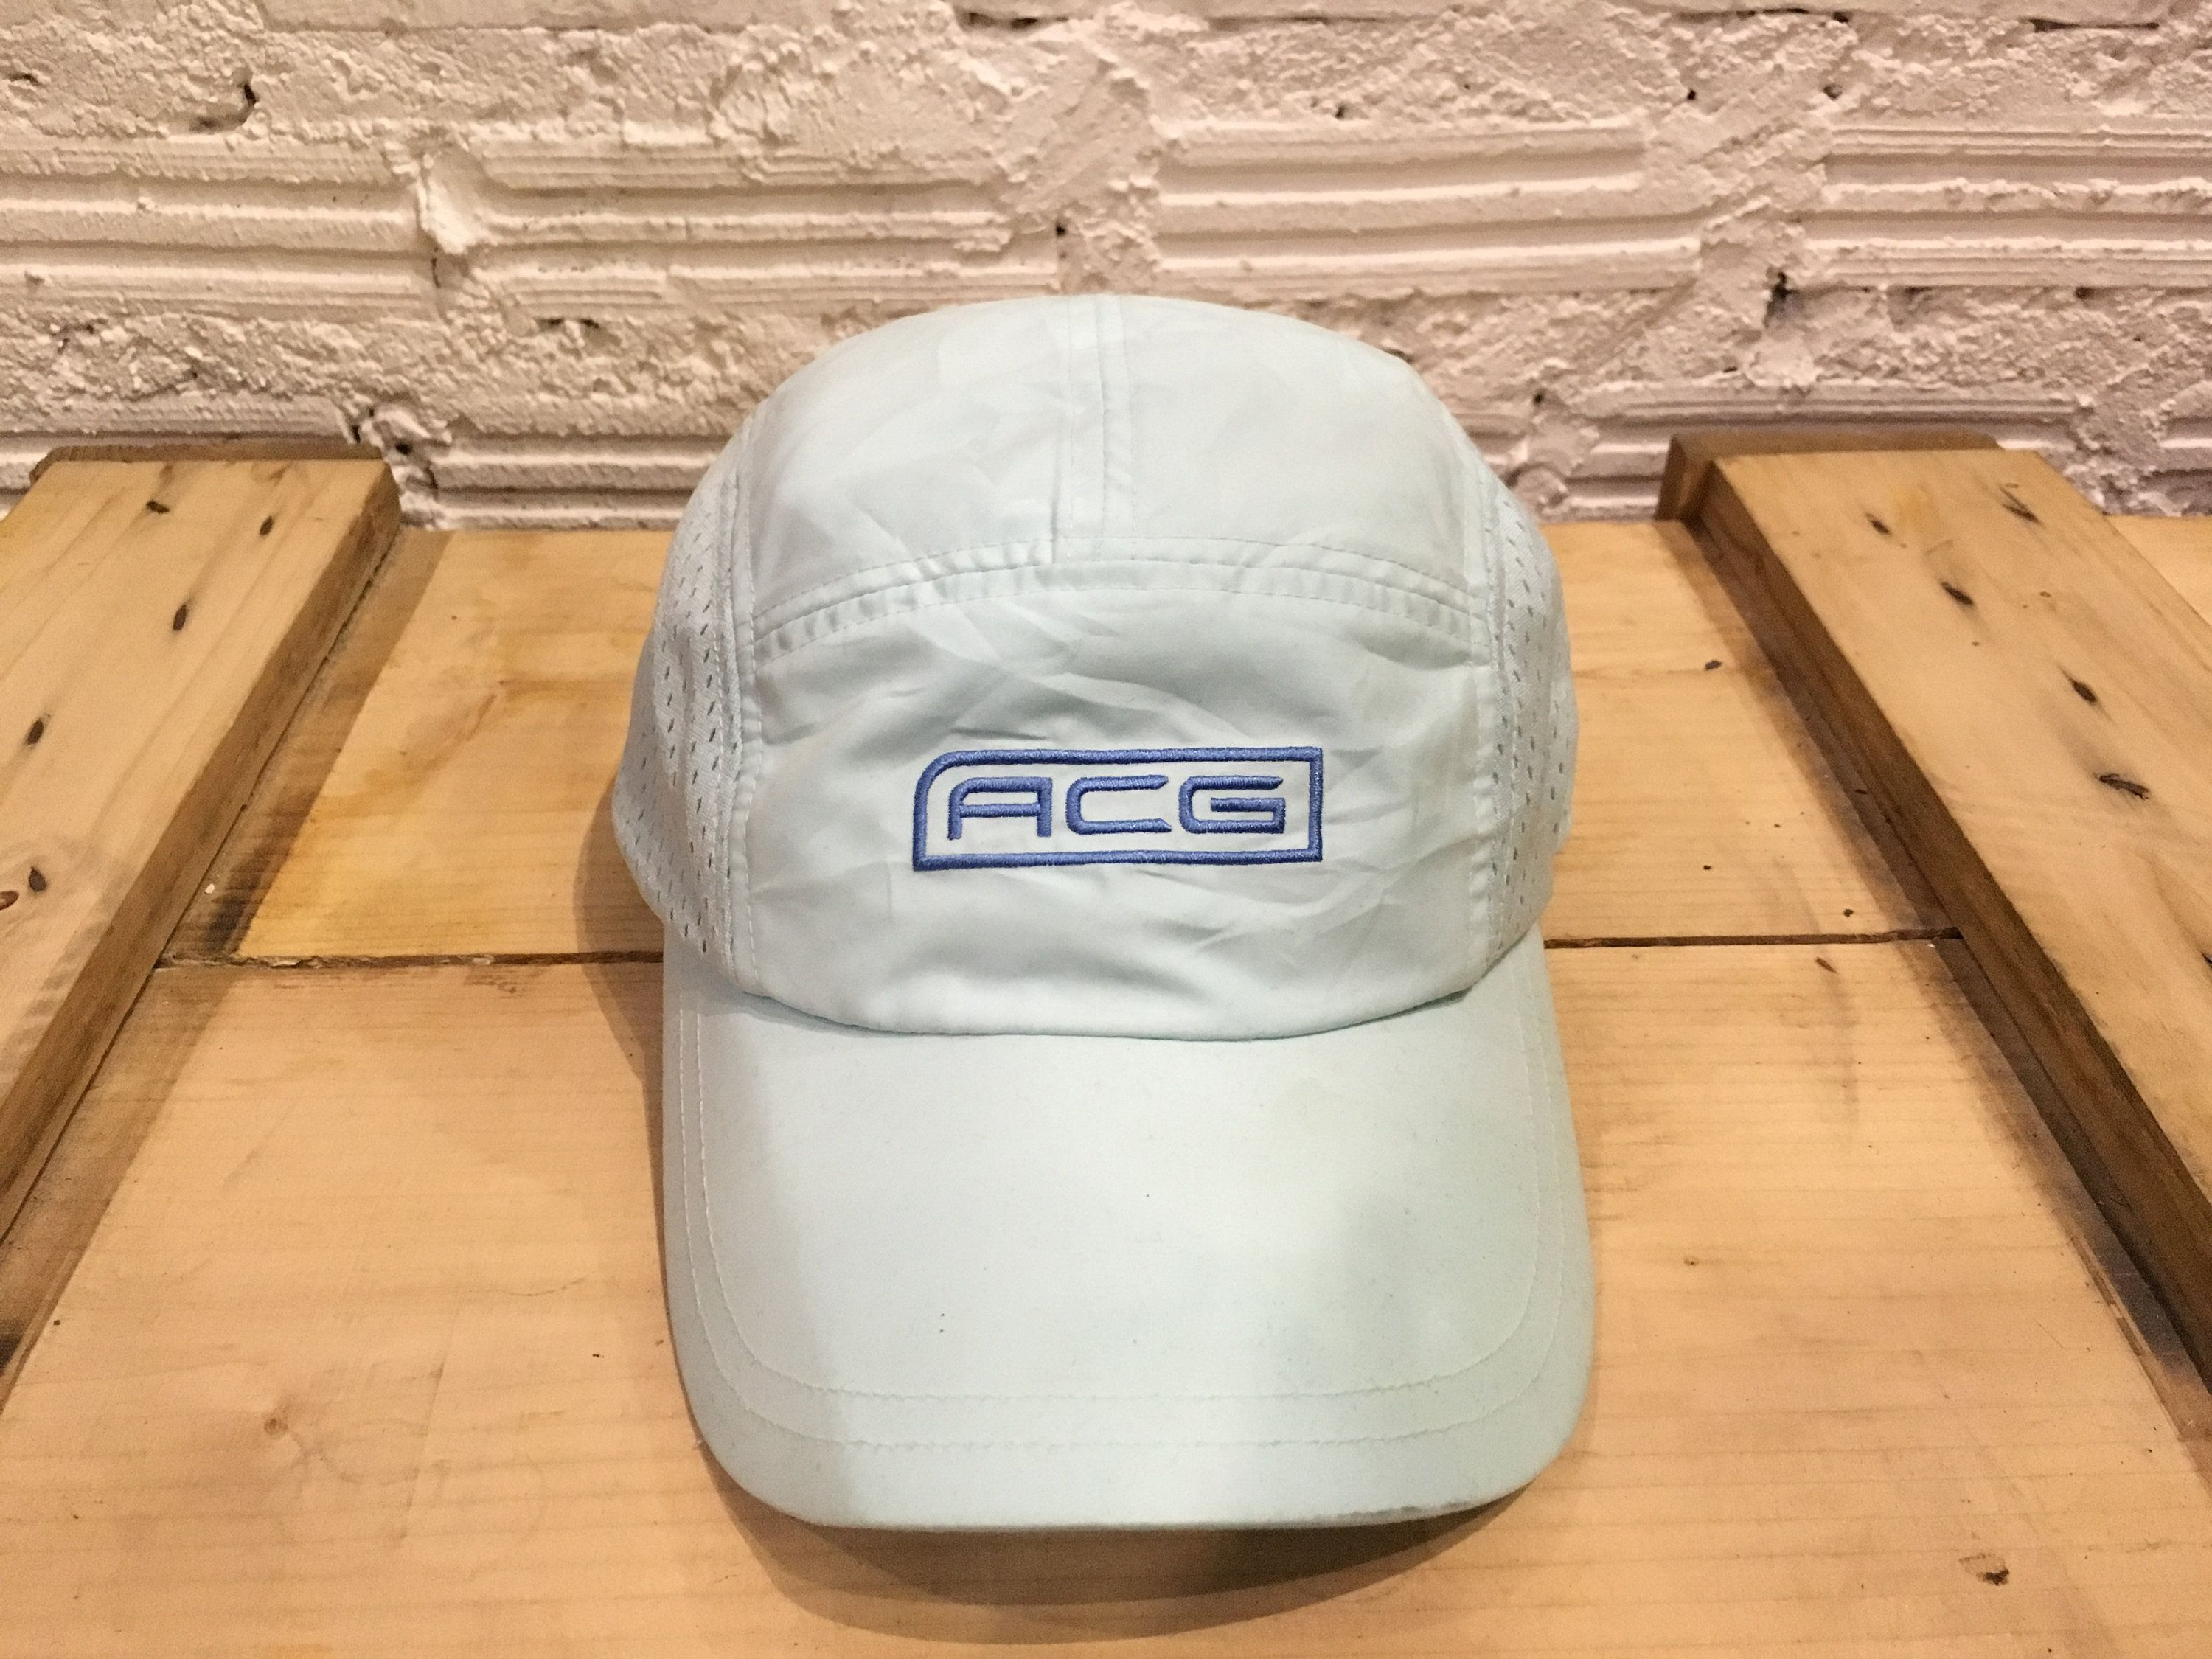 176918f9d46 Vintage Nike ACG camp cap mesh nylon hat ACG box logo Neon light Blue Good  condition Nike all conditions gear by AlivevintageShop on Etsy